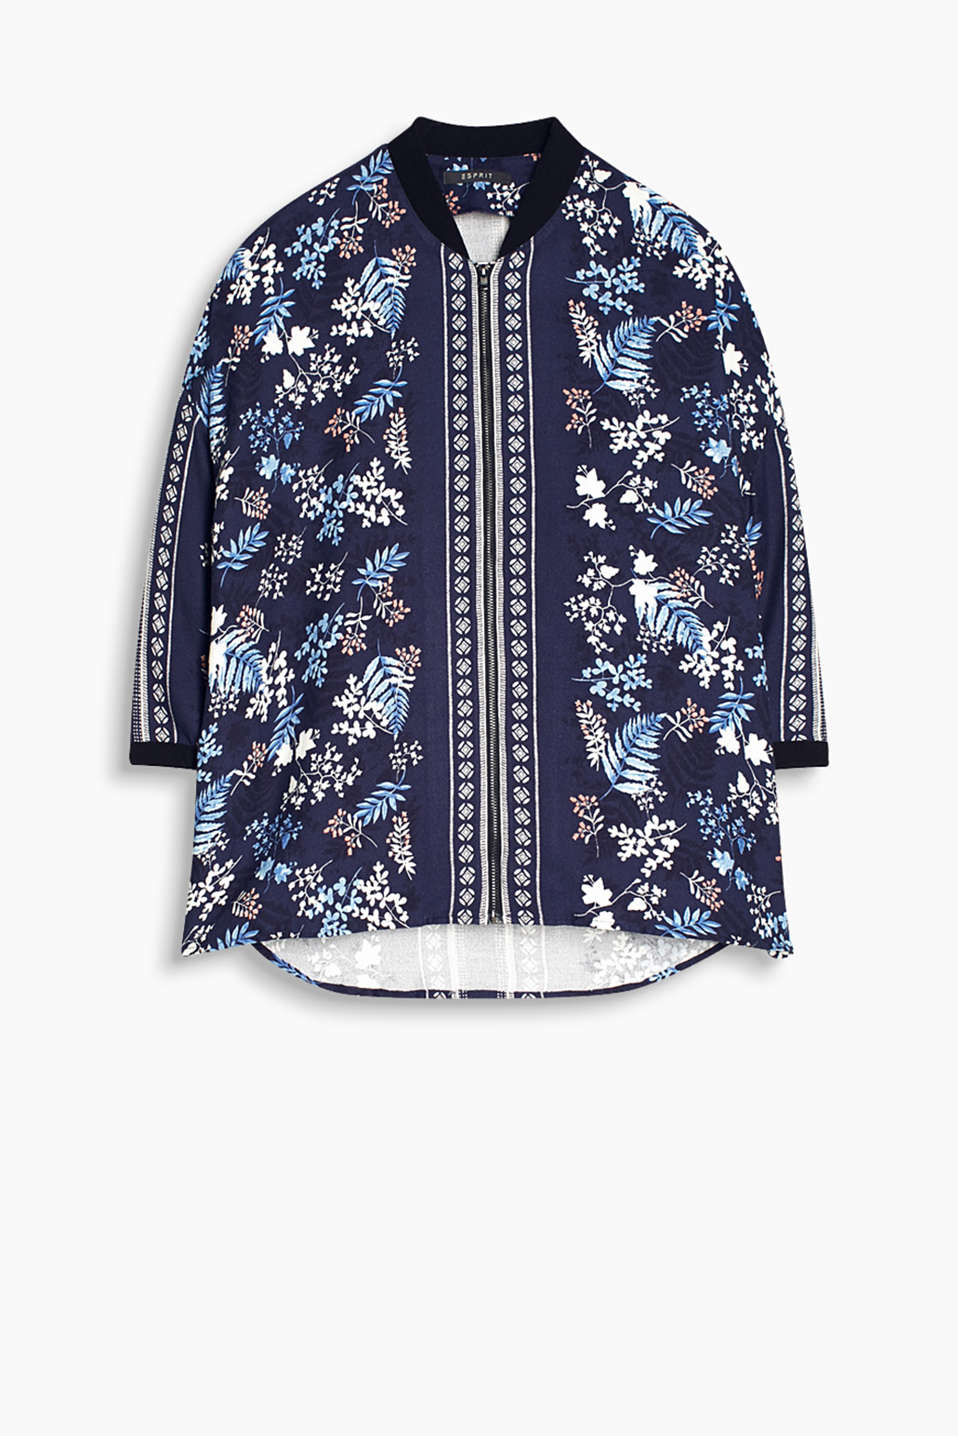 Flowing blouse jacket with a floral print in a characteristic bomber style